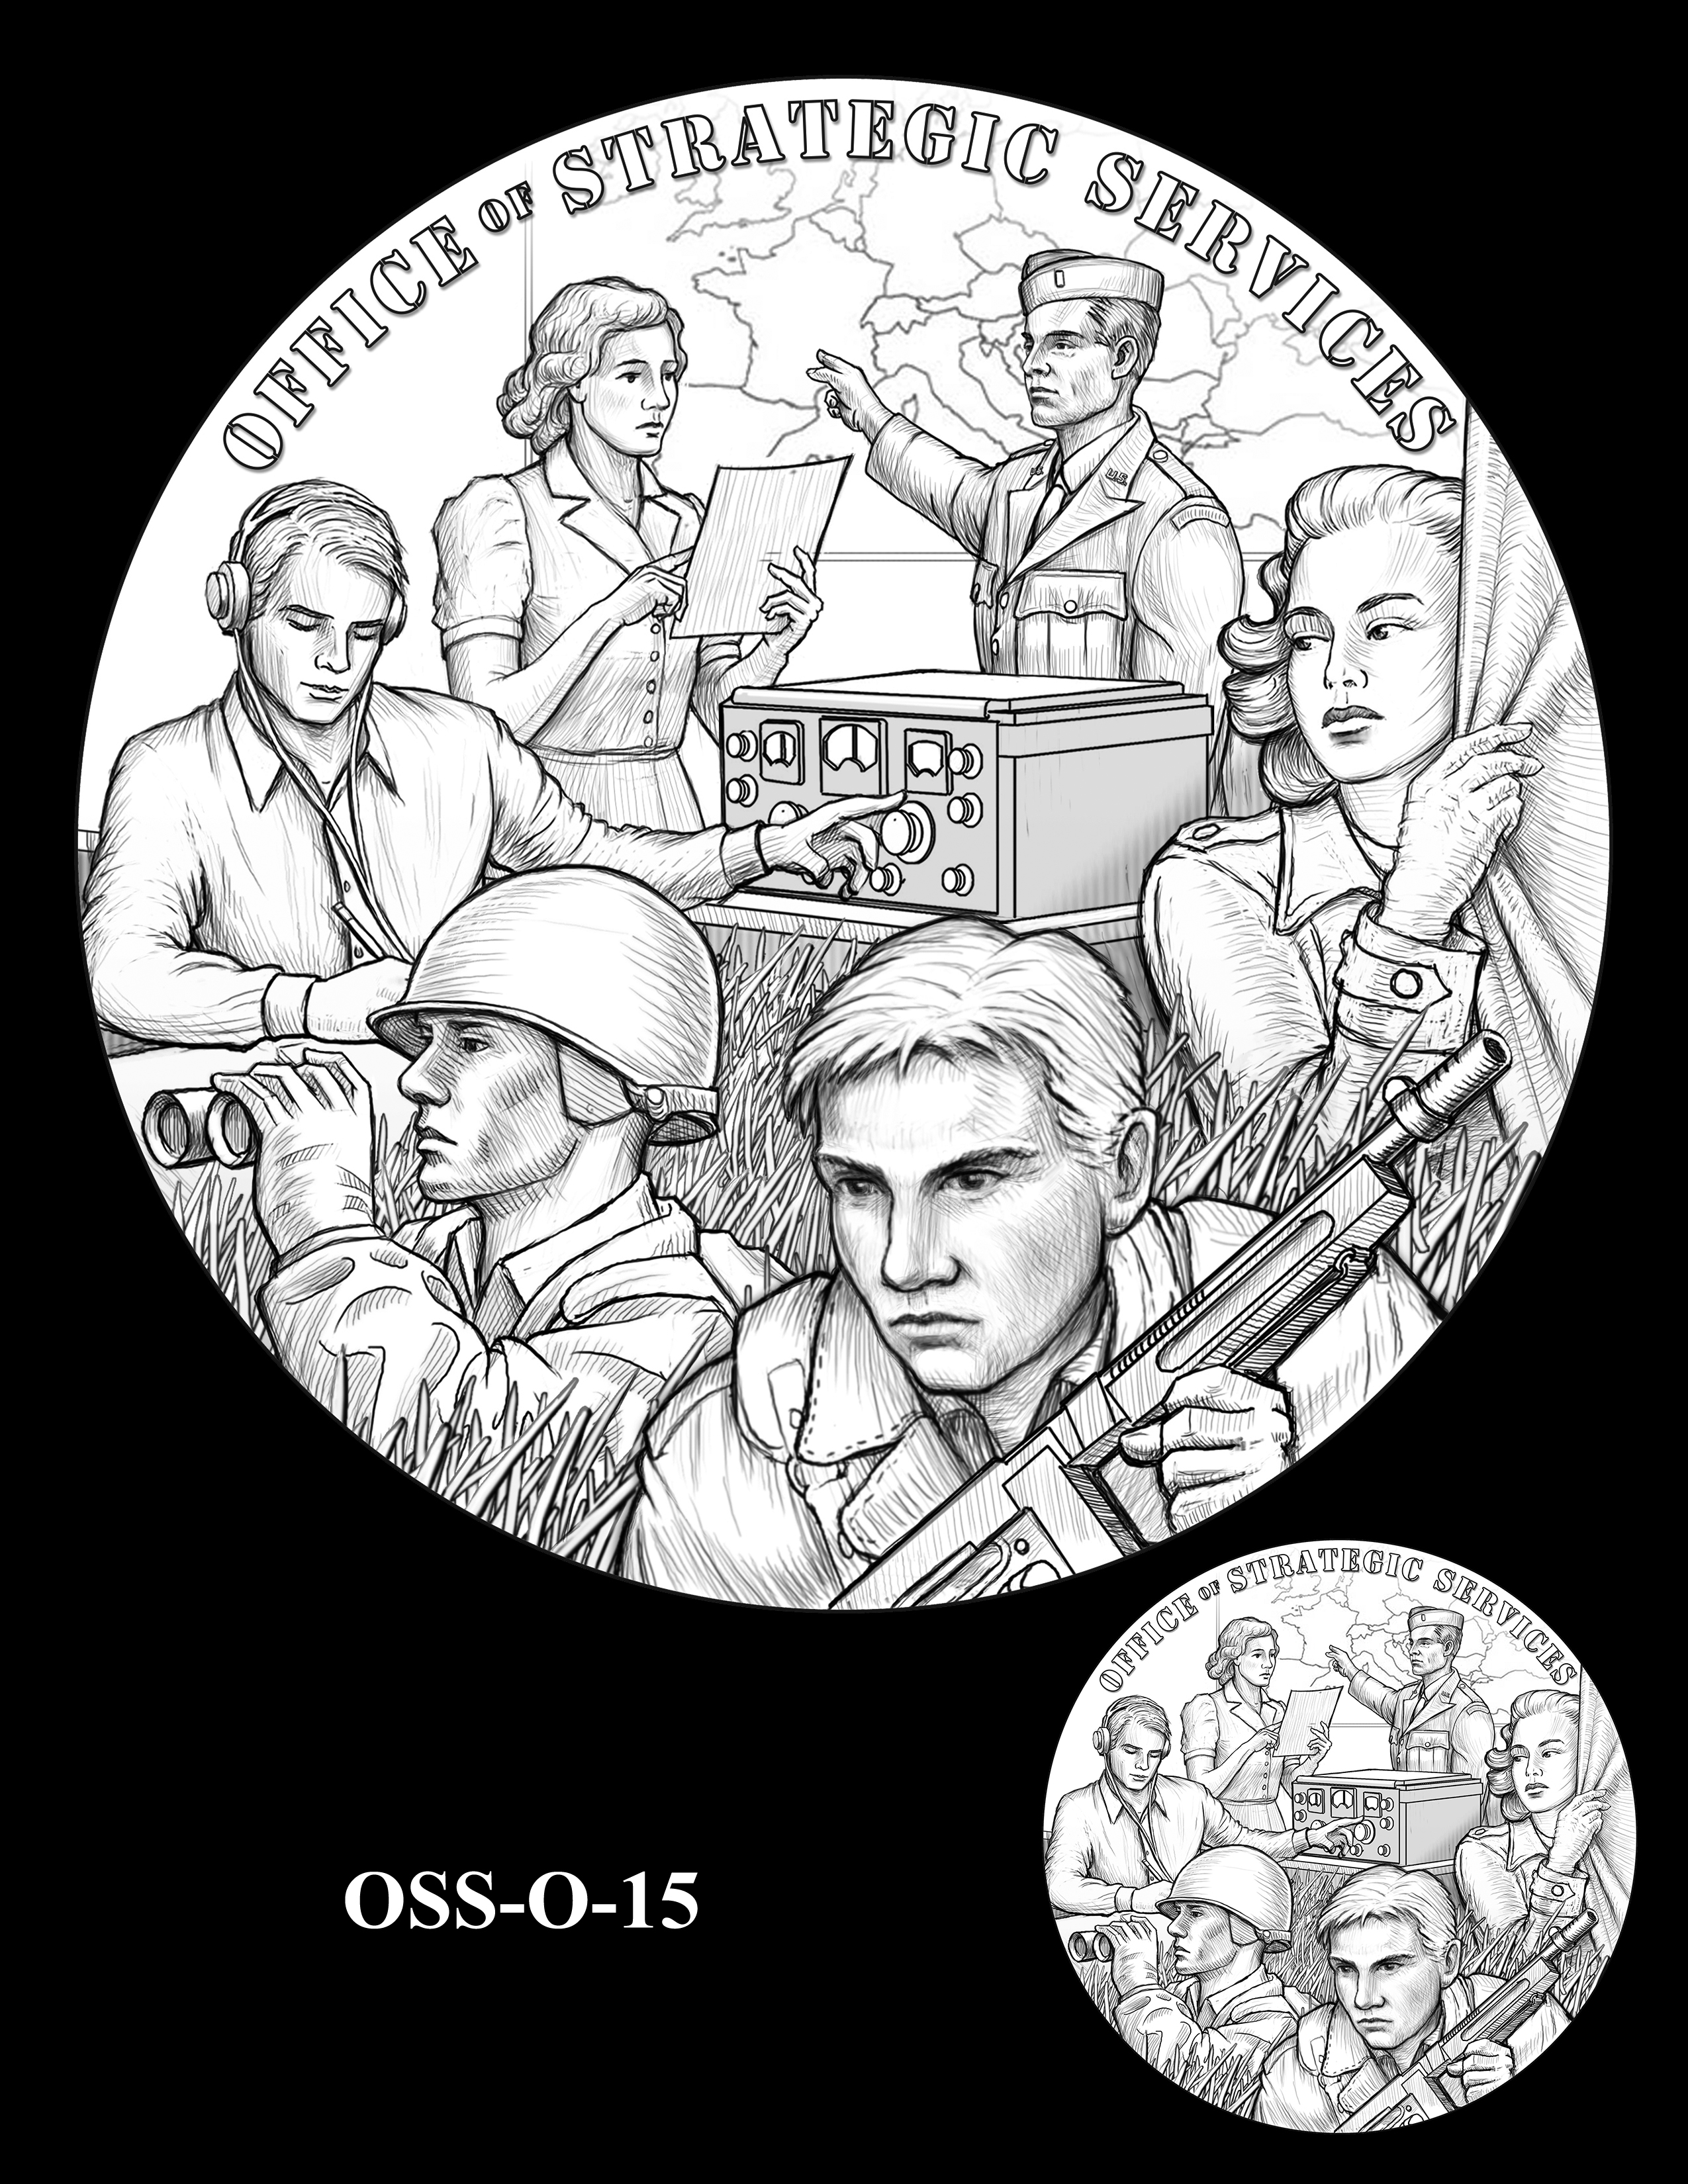 OSS-O-15 -- Office of Strategic Services Congressional Gold Medal